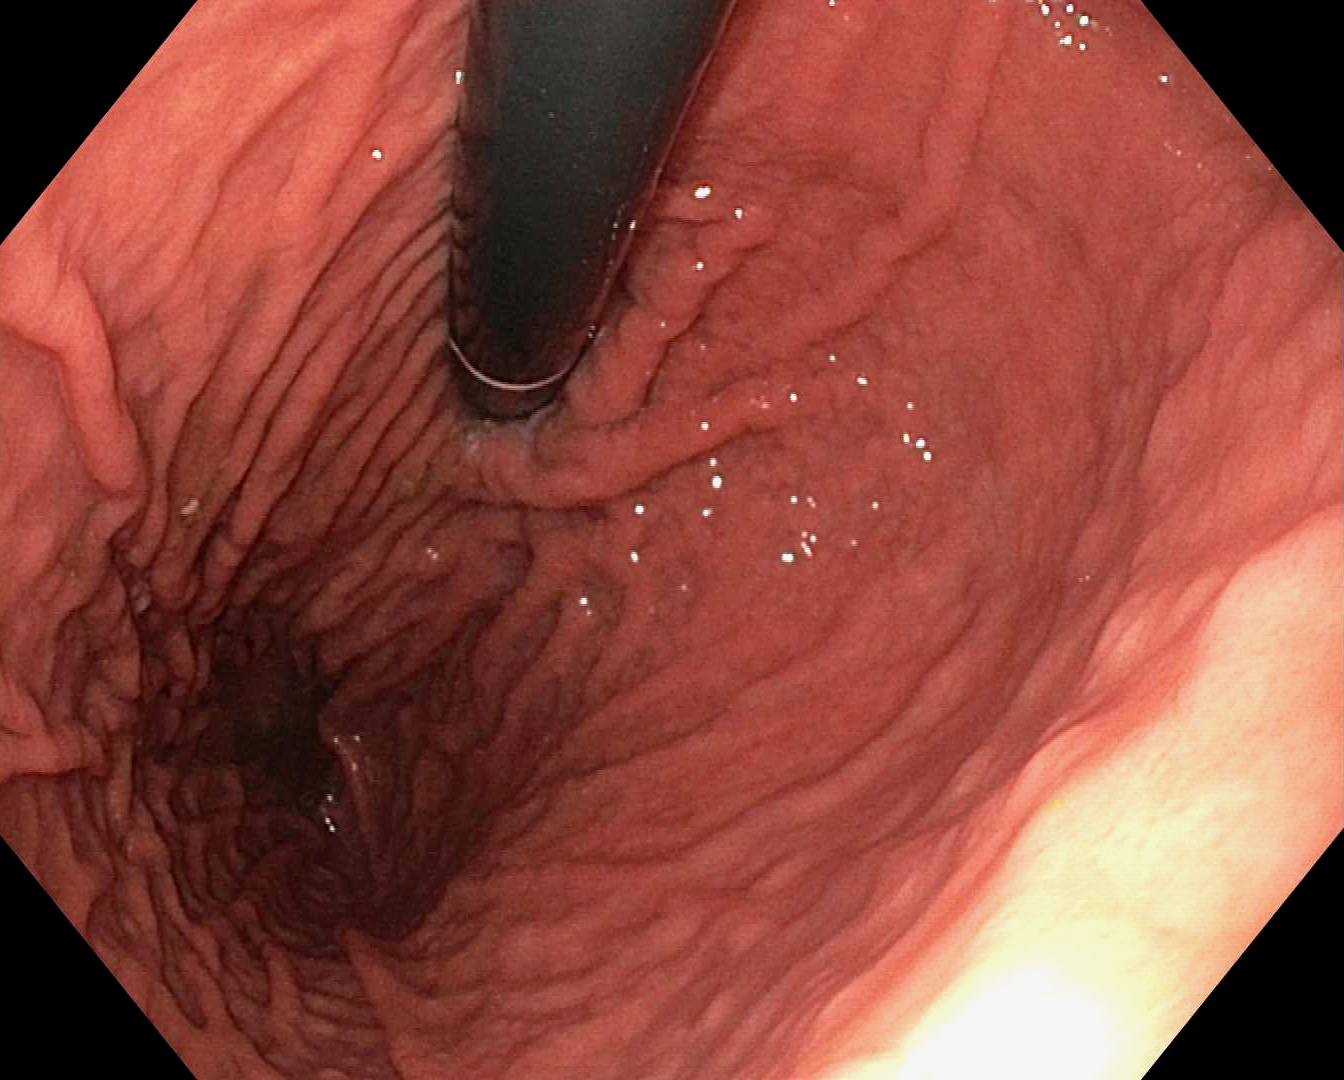 Endoscopic view of gastric cardia and fundus